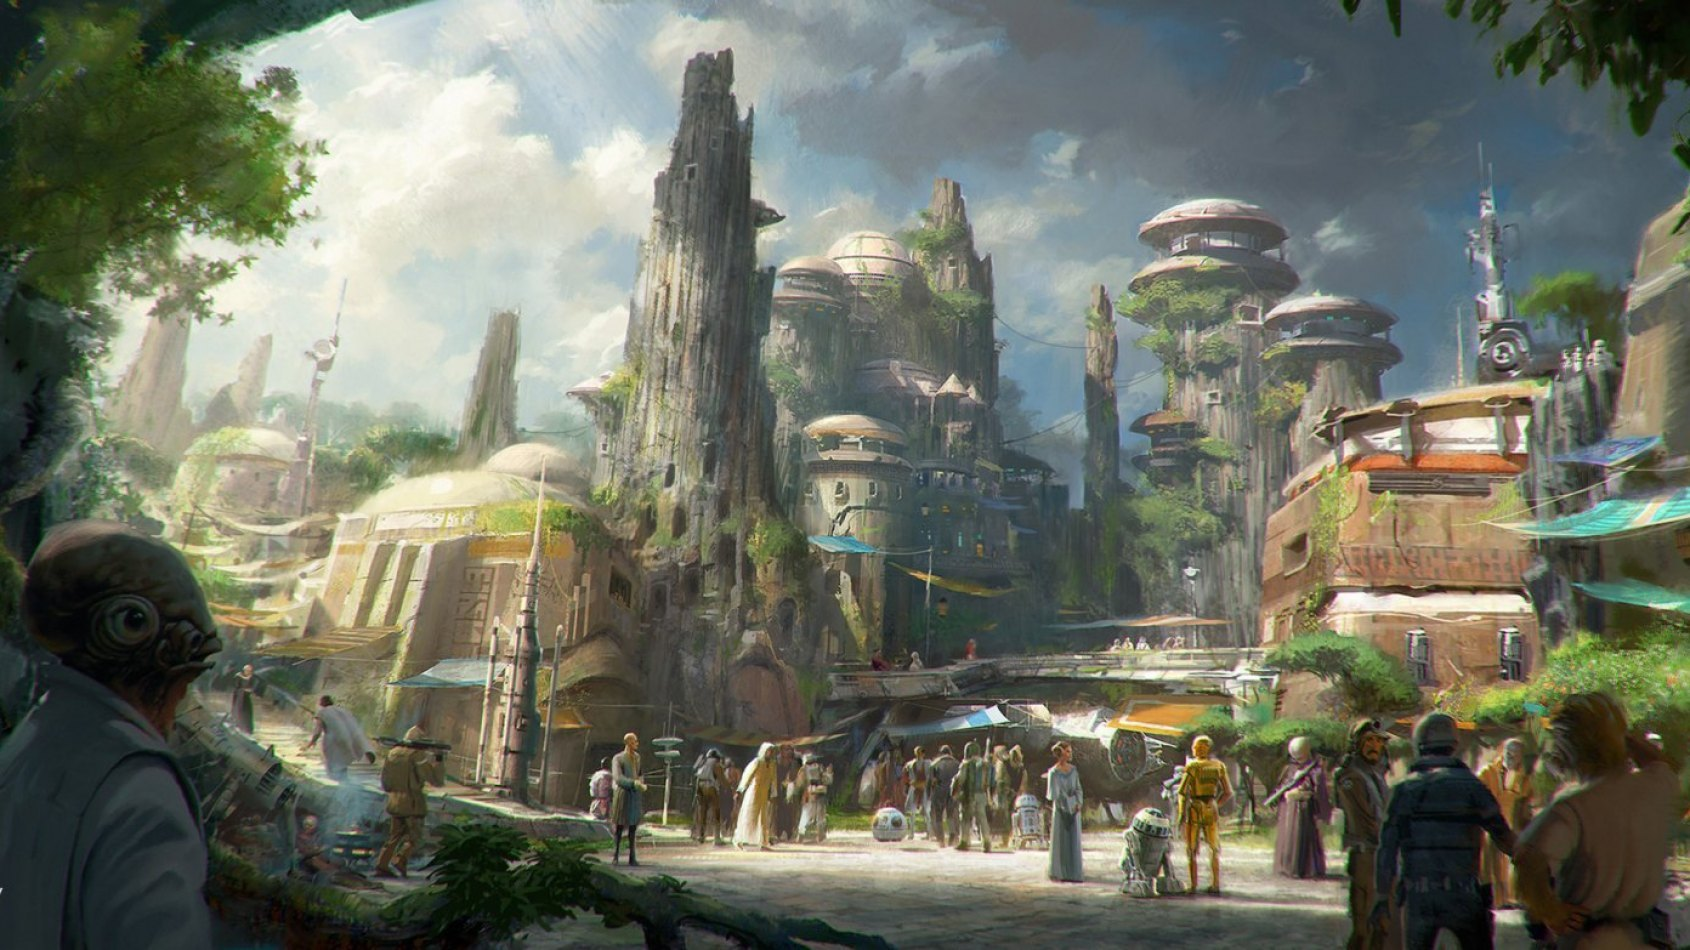 Le chantier du Star Wars Land a officiellement commencé !